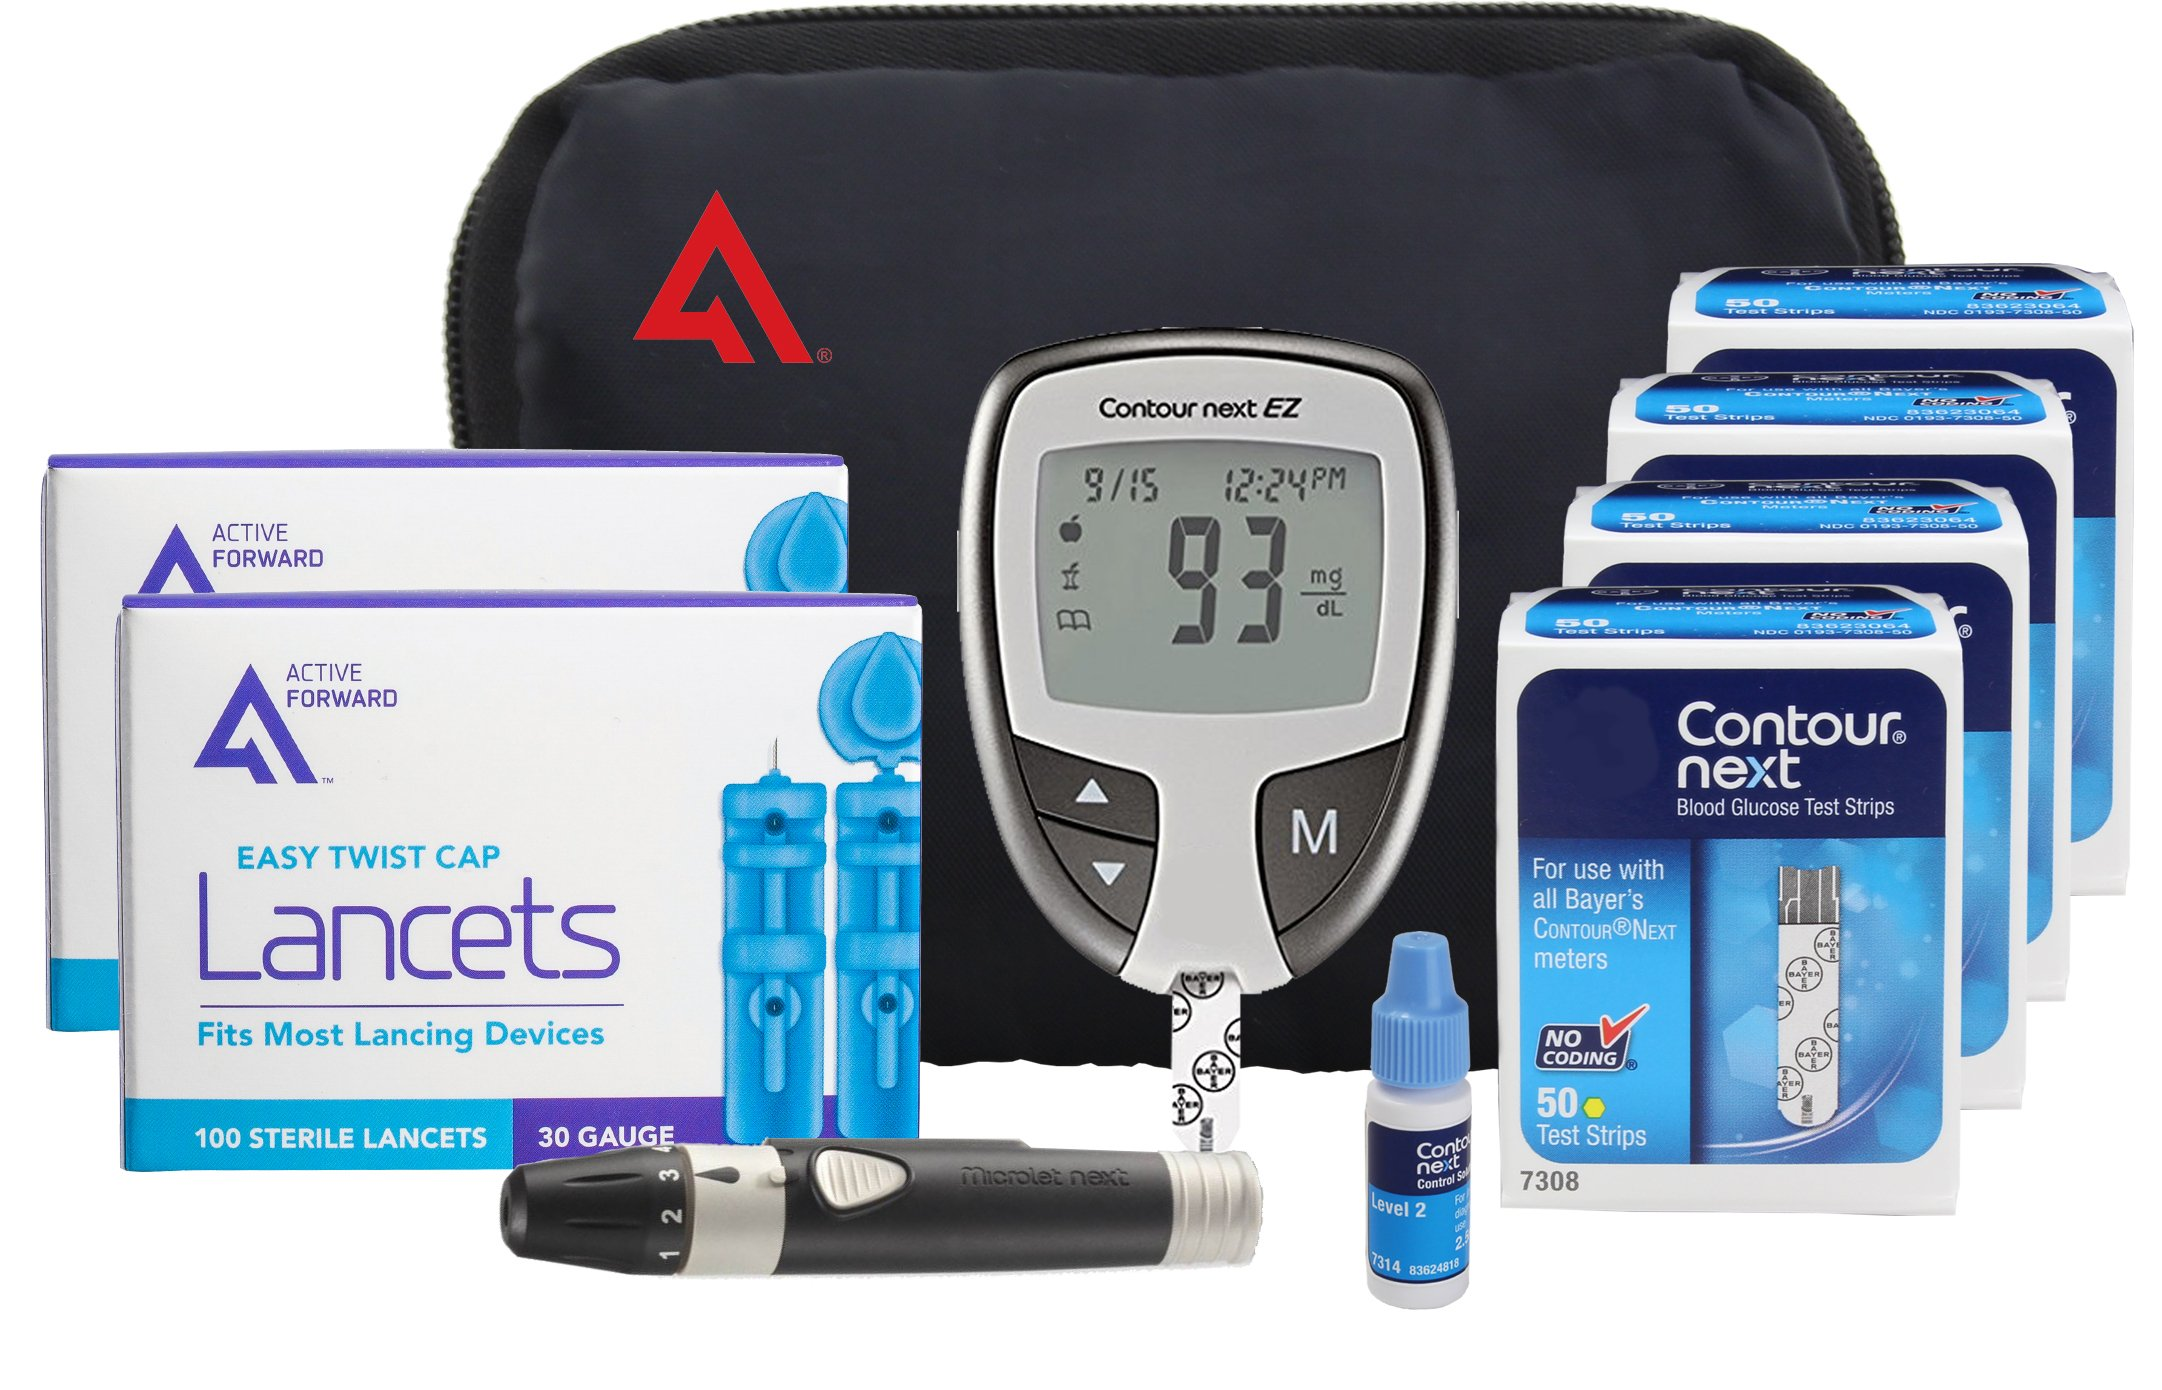 Contour NEXT Diabetes Testing Kit, 200 Count | Contour NEXT EZ Meter, 200 Contour NEXT Test Strips, 200 Lancets, Lancing Device, Control Solution, Manuals, Log Book & Carry Case